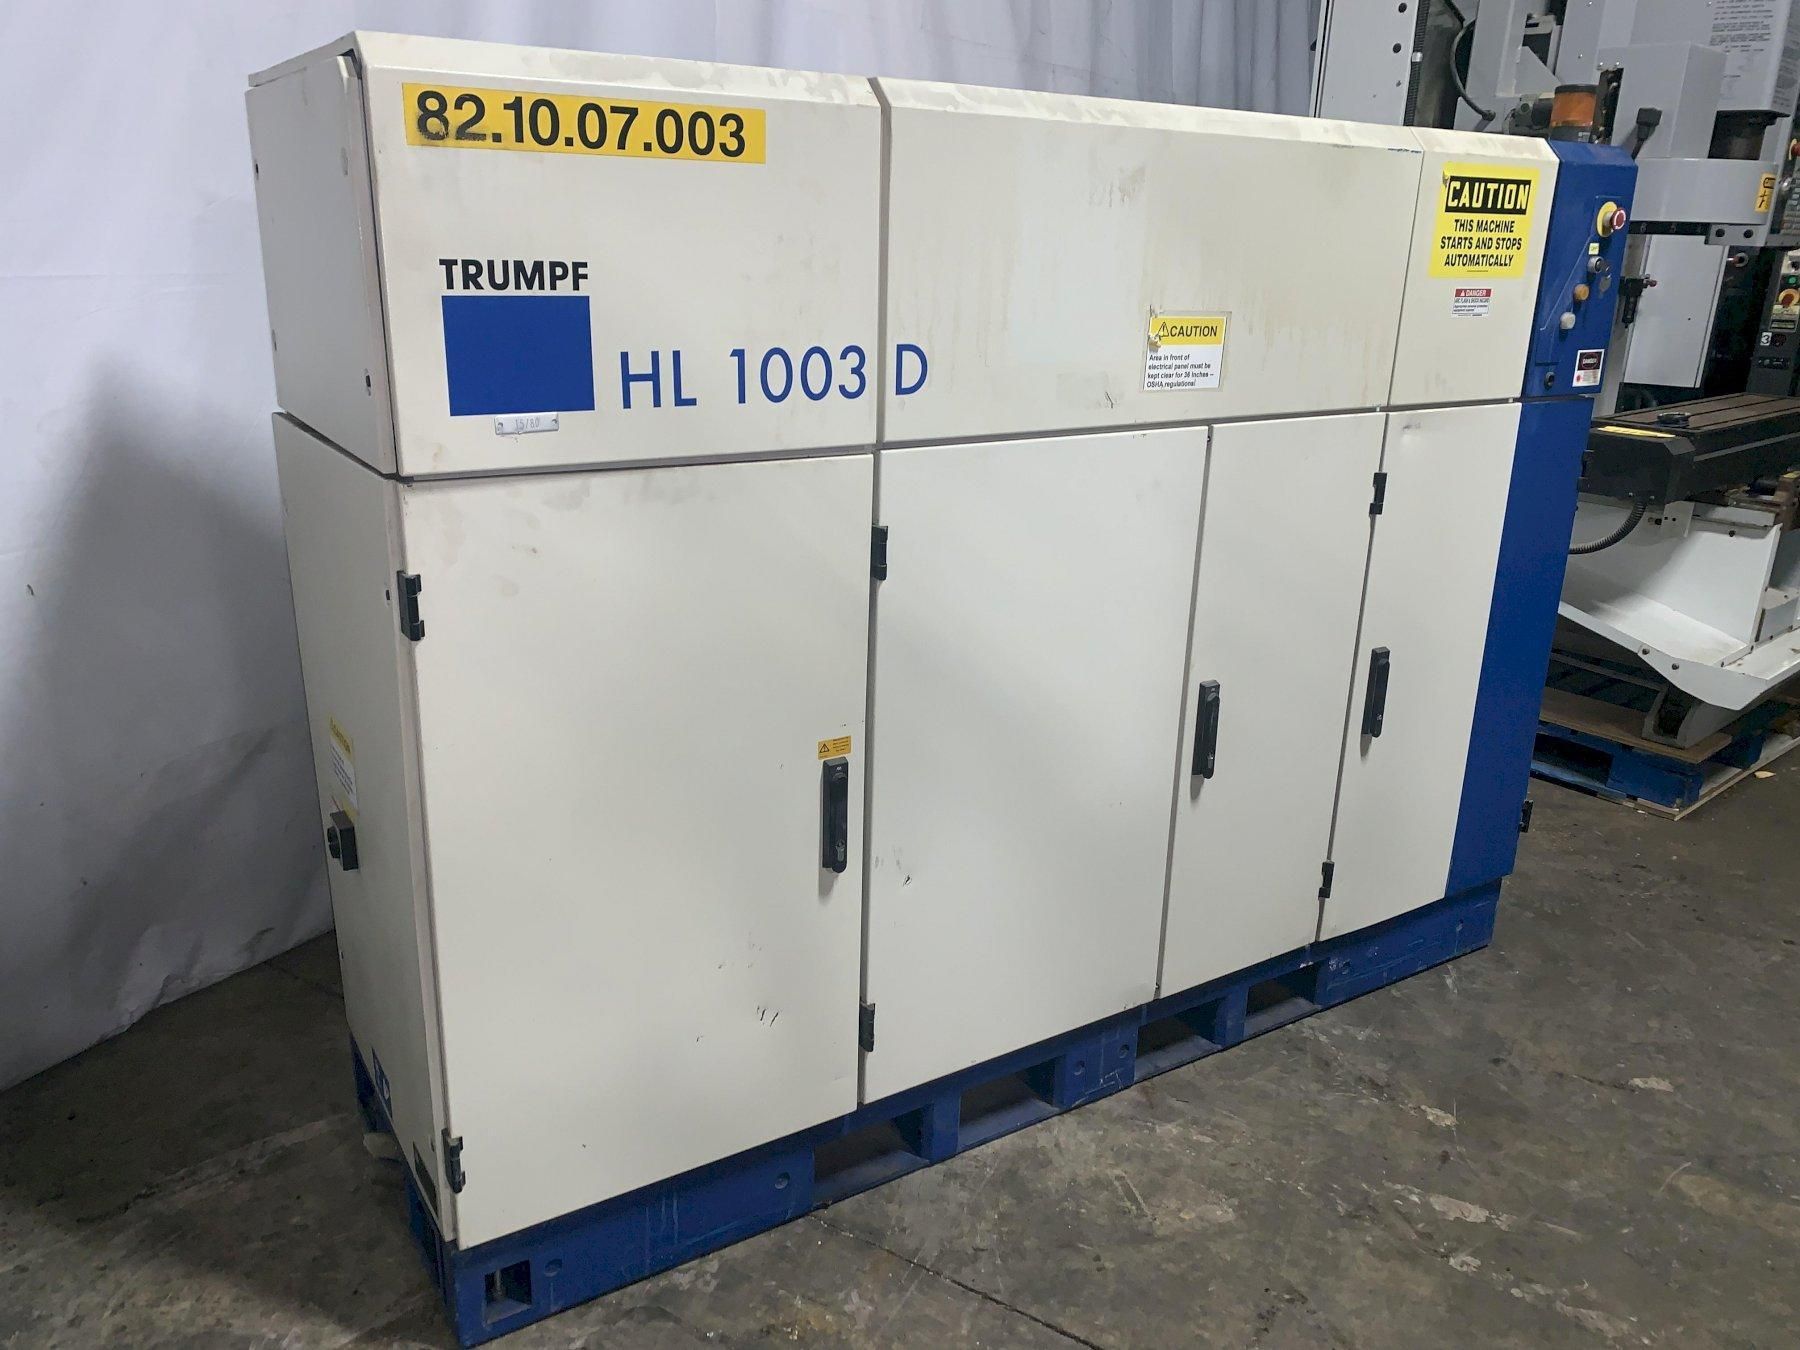 1000 WATT TRUMPF MODEL HL1003D LASER POWER SUPPLY: STOCK #11198